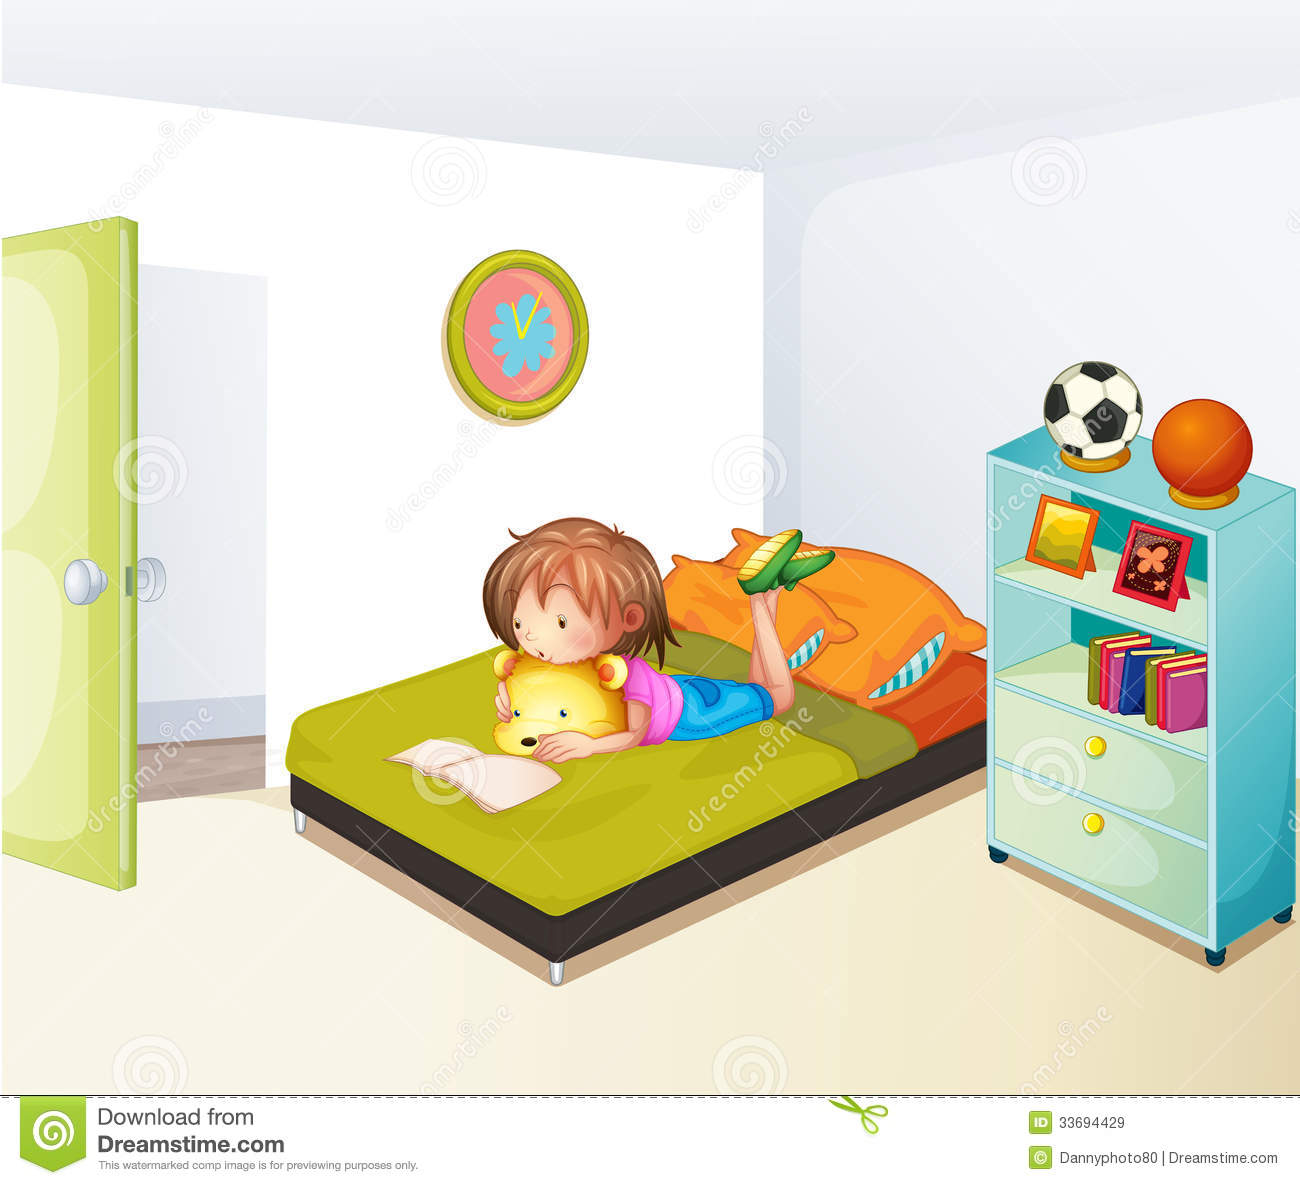 kids clean room clip art the image kid has it. Black Bedroom Furniture Sets. Home Design Ideas